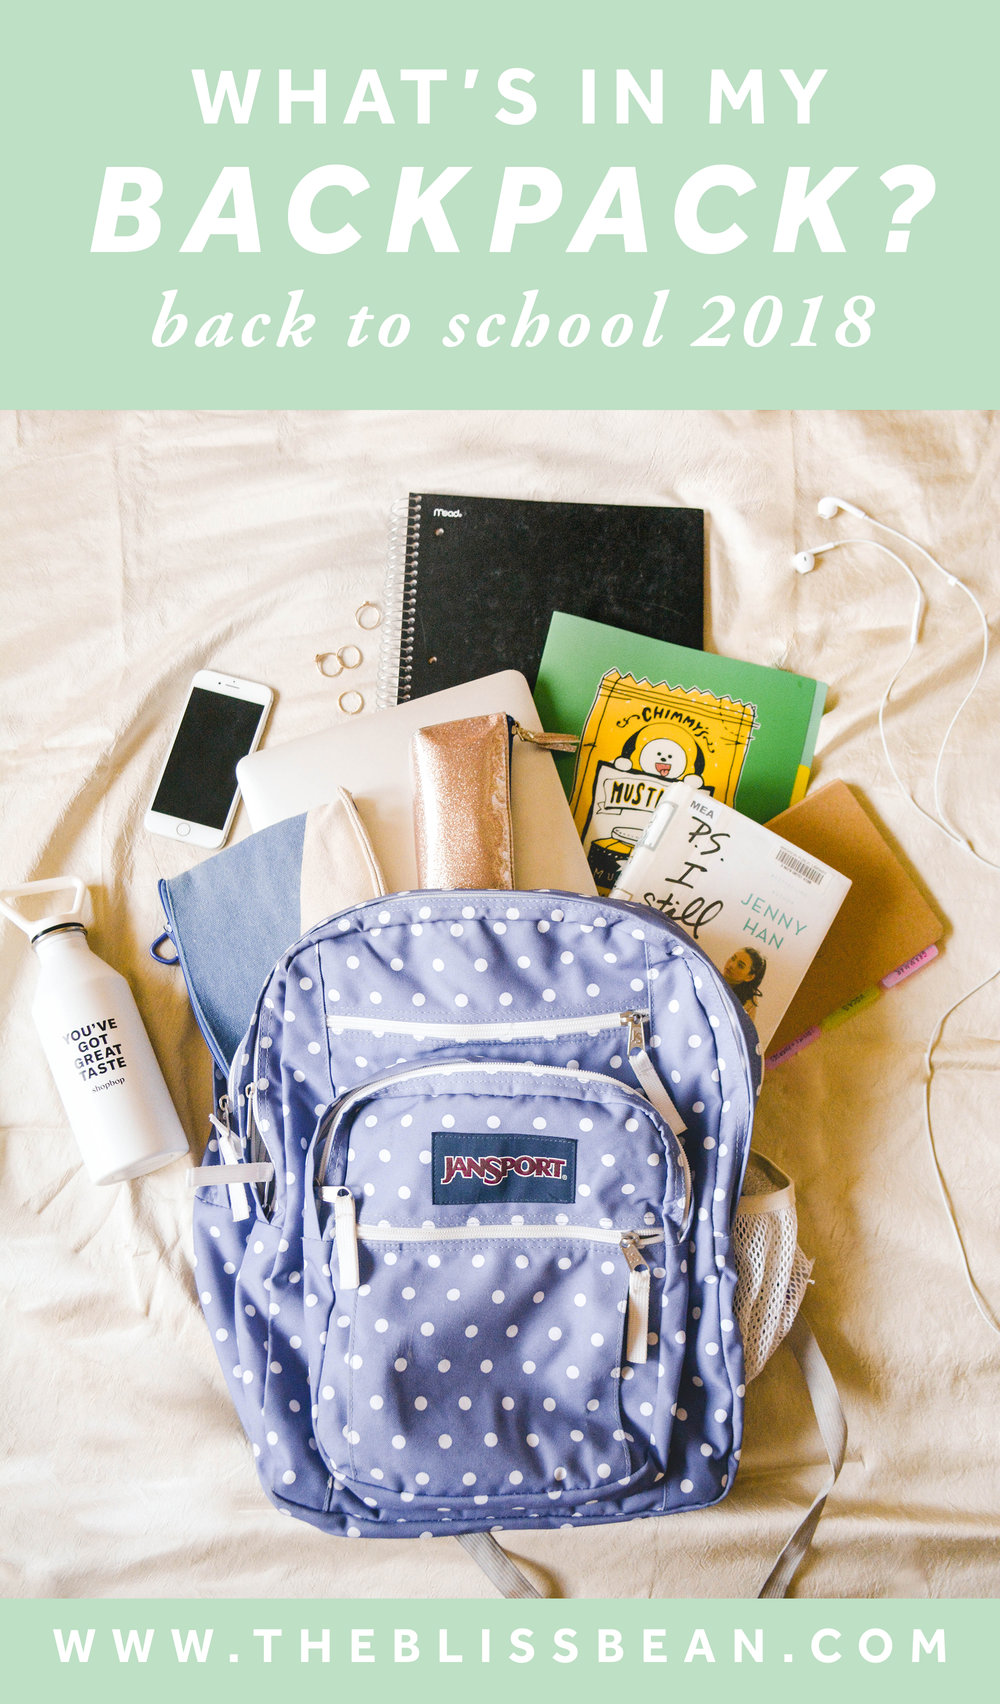 0 - Cover Image - What's in My Backpack Back to School 2018 (1 of 21).jpg